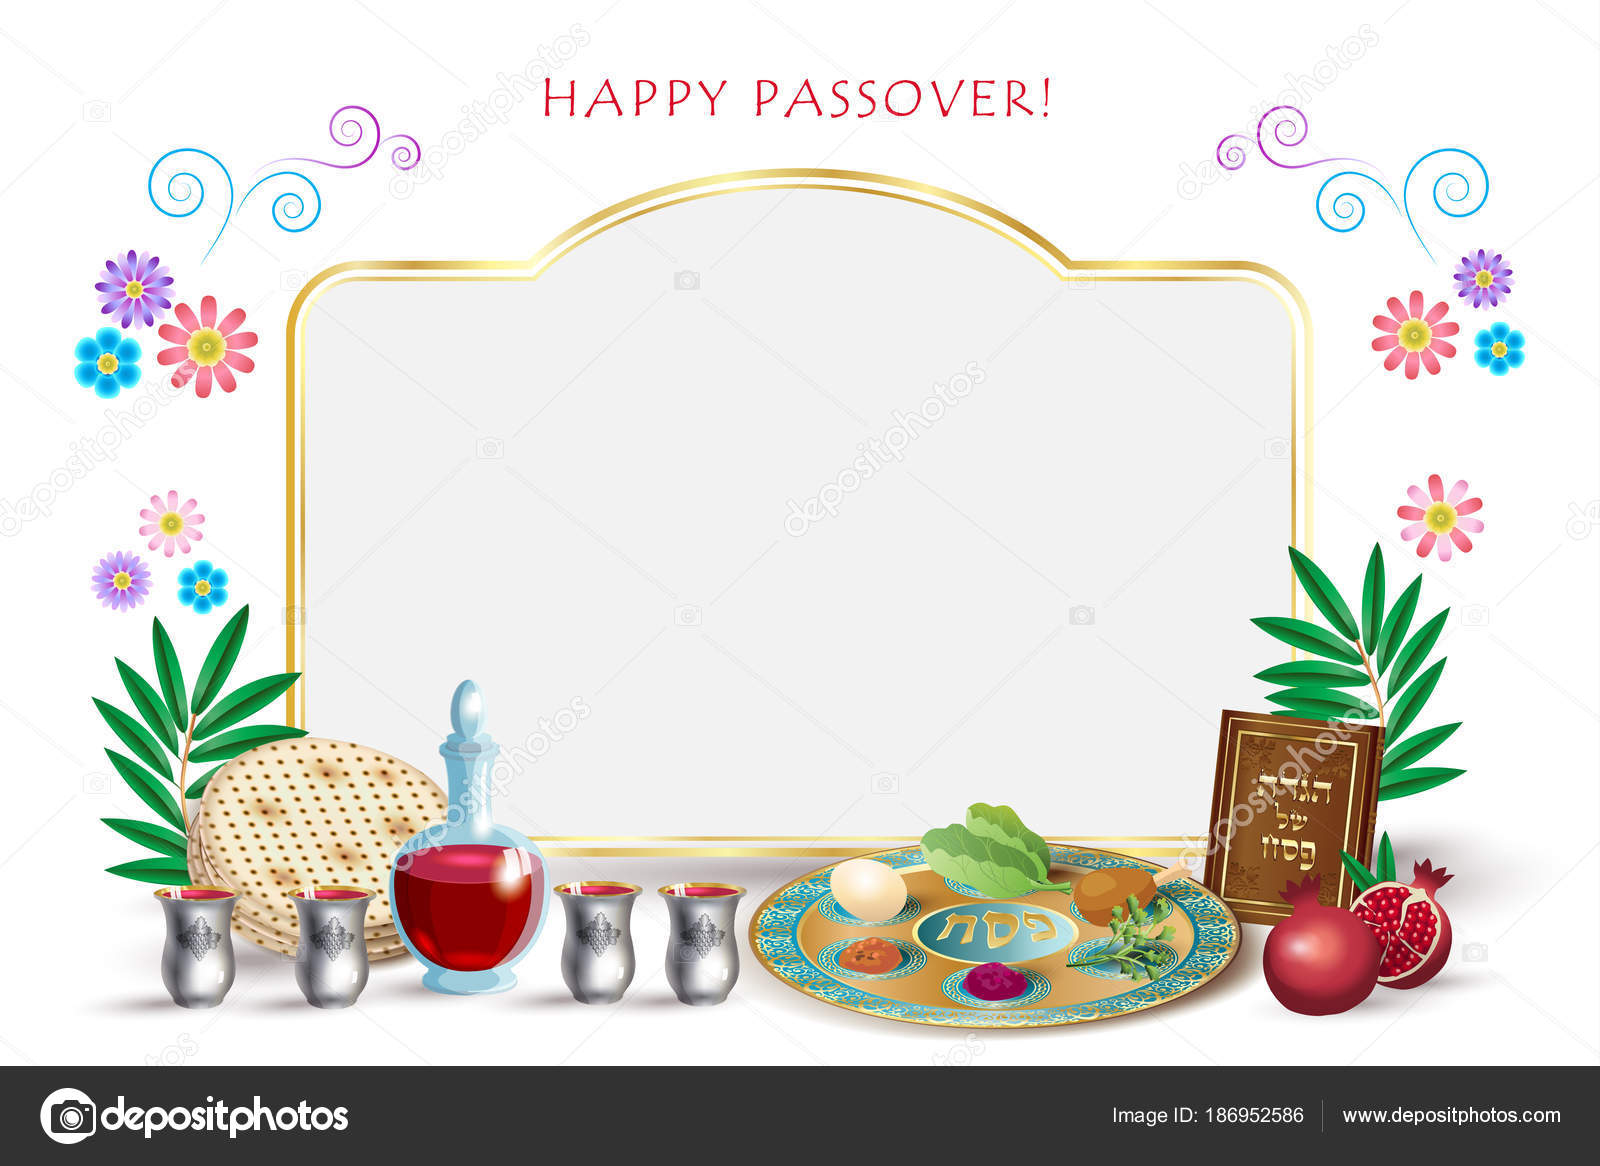 Happy Passover Lettering Jewish Holiday Symbols Icons Four Wine